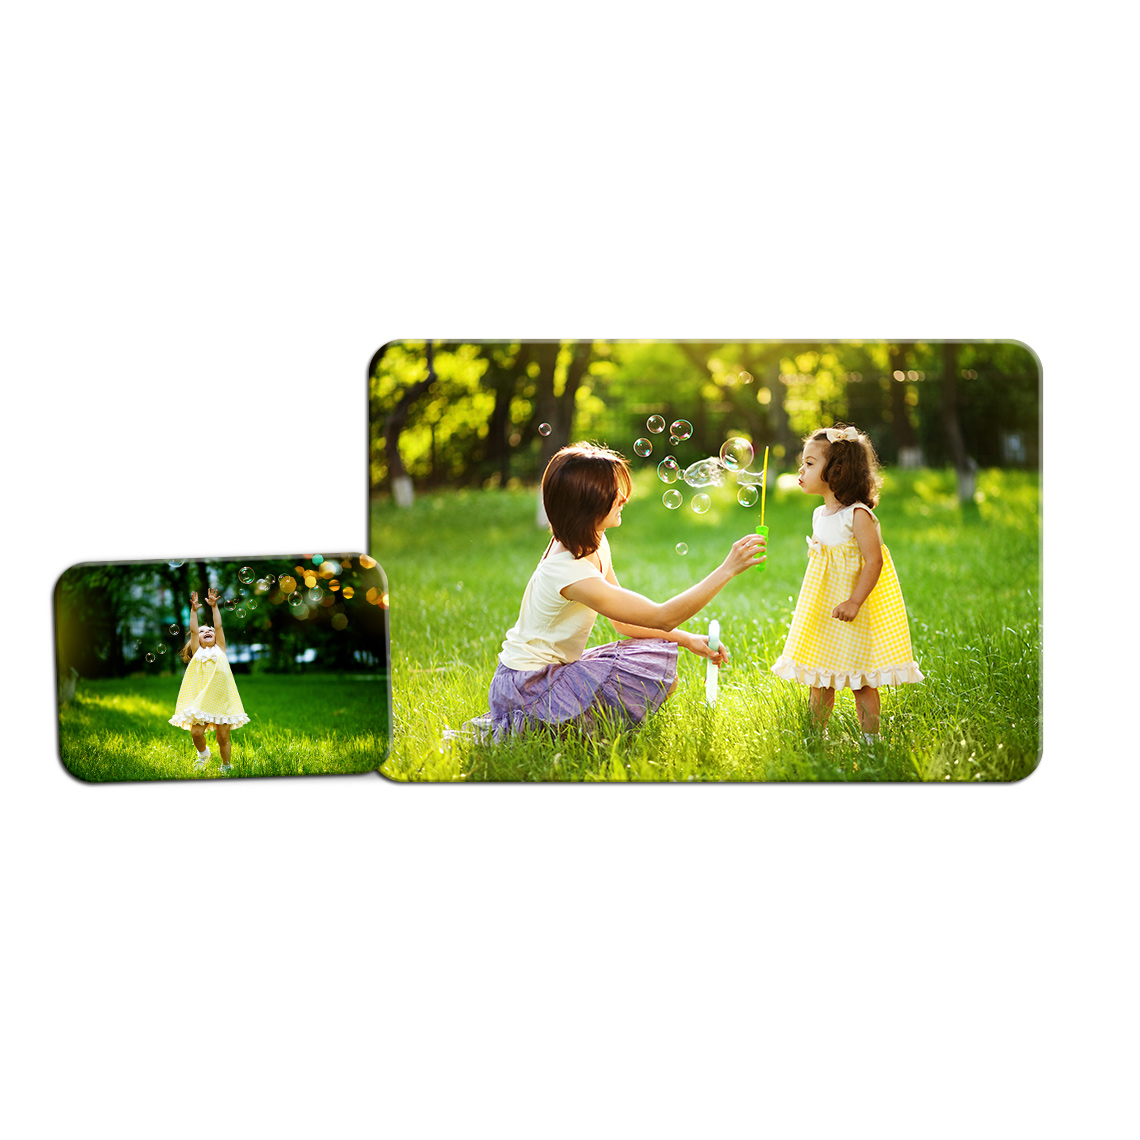 3x2 photo magnets personalised magnets truprint